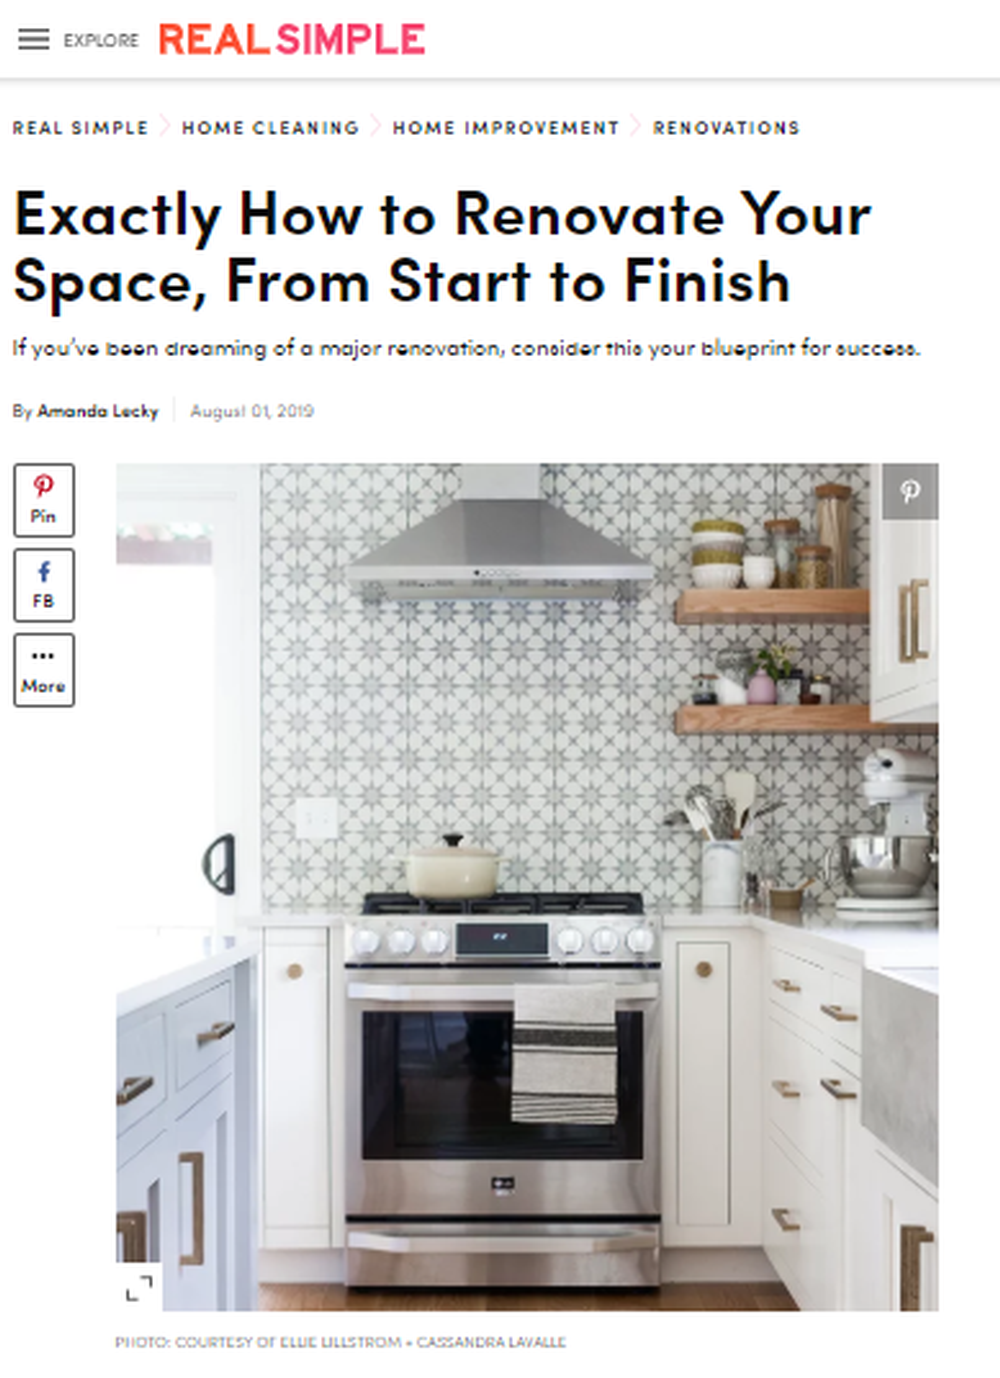 Exactly How to Renovate Your Space  from Start to Finish   Real Simple.png